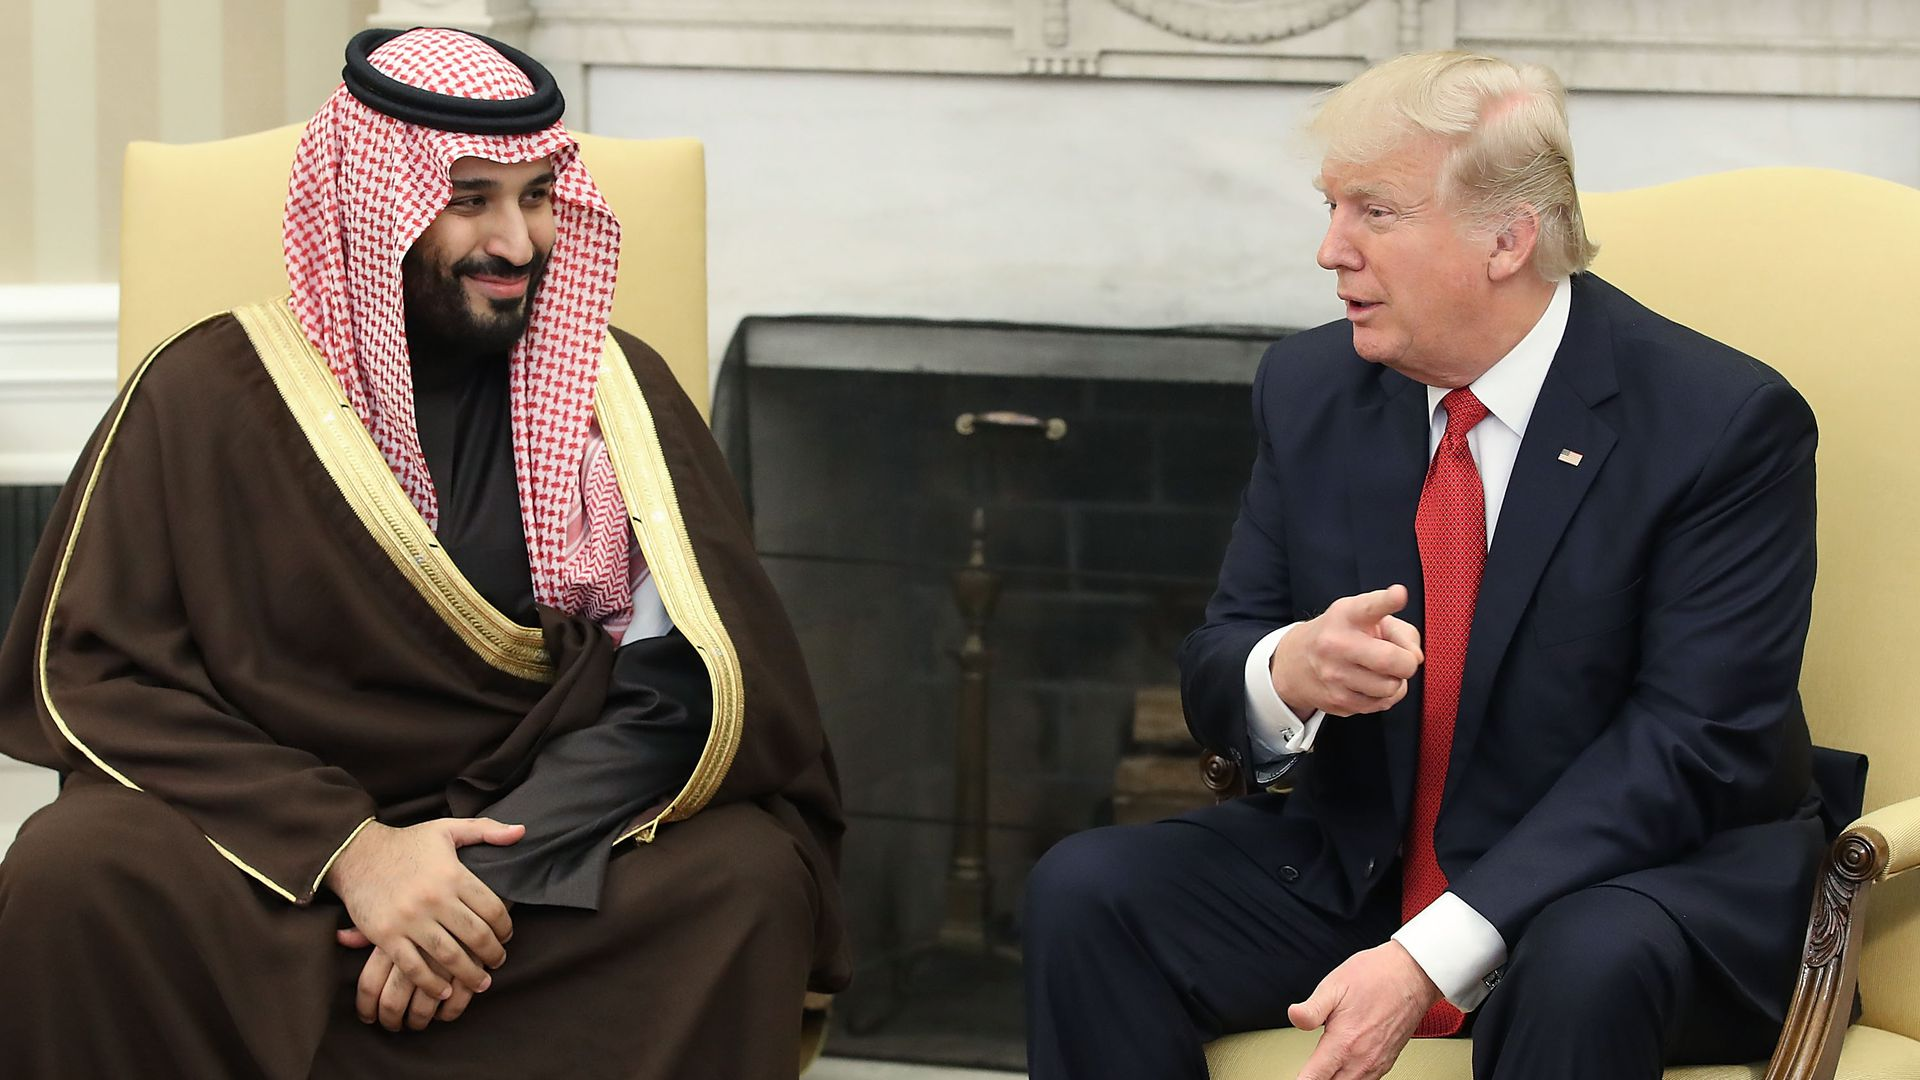 President Trump and Saudi Crown Prince Mohammed Bin Salman seated next to each other in Oval Office